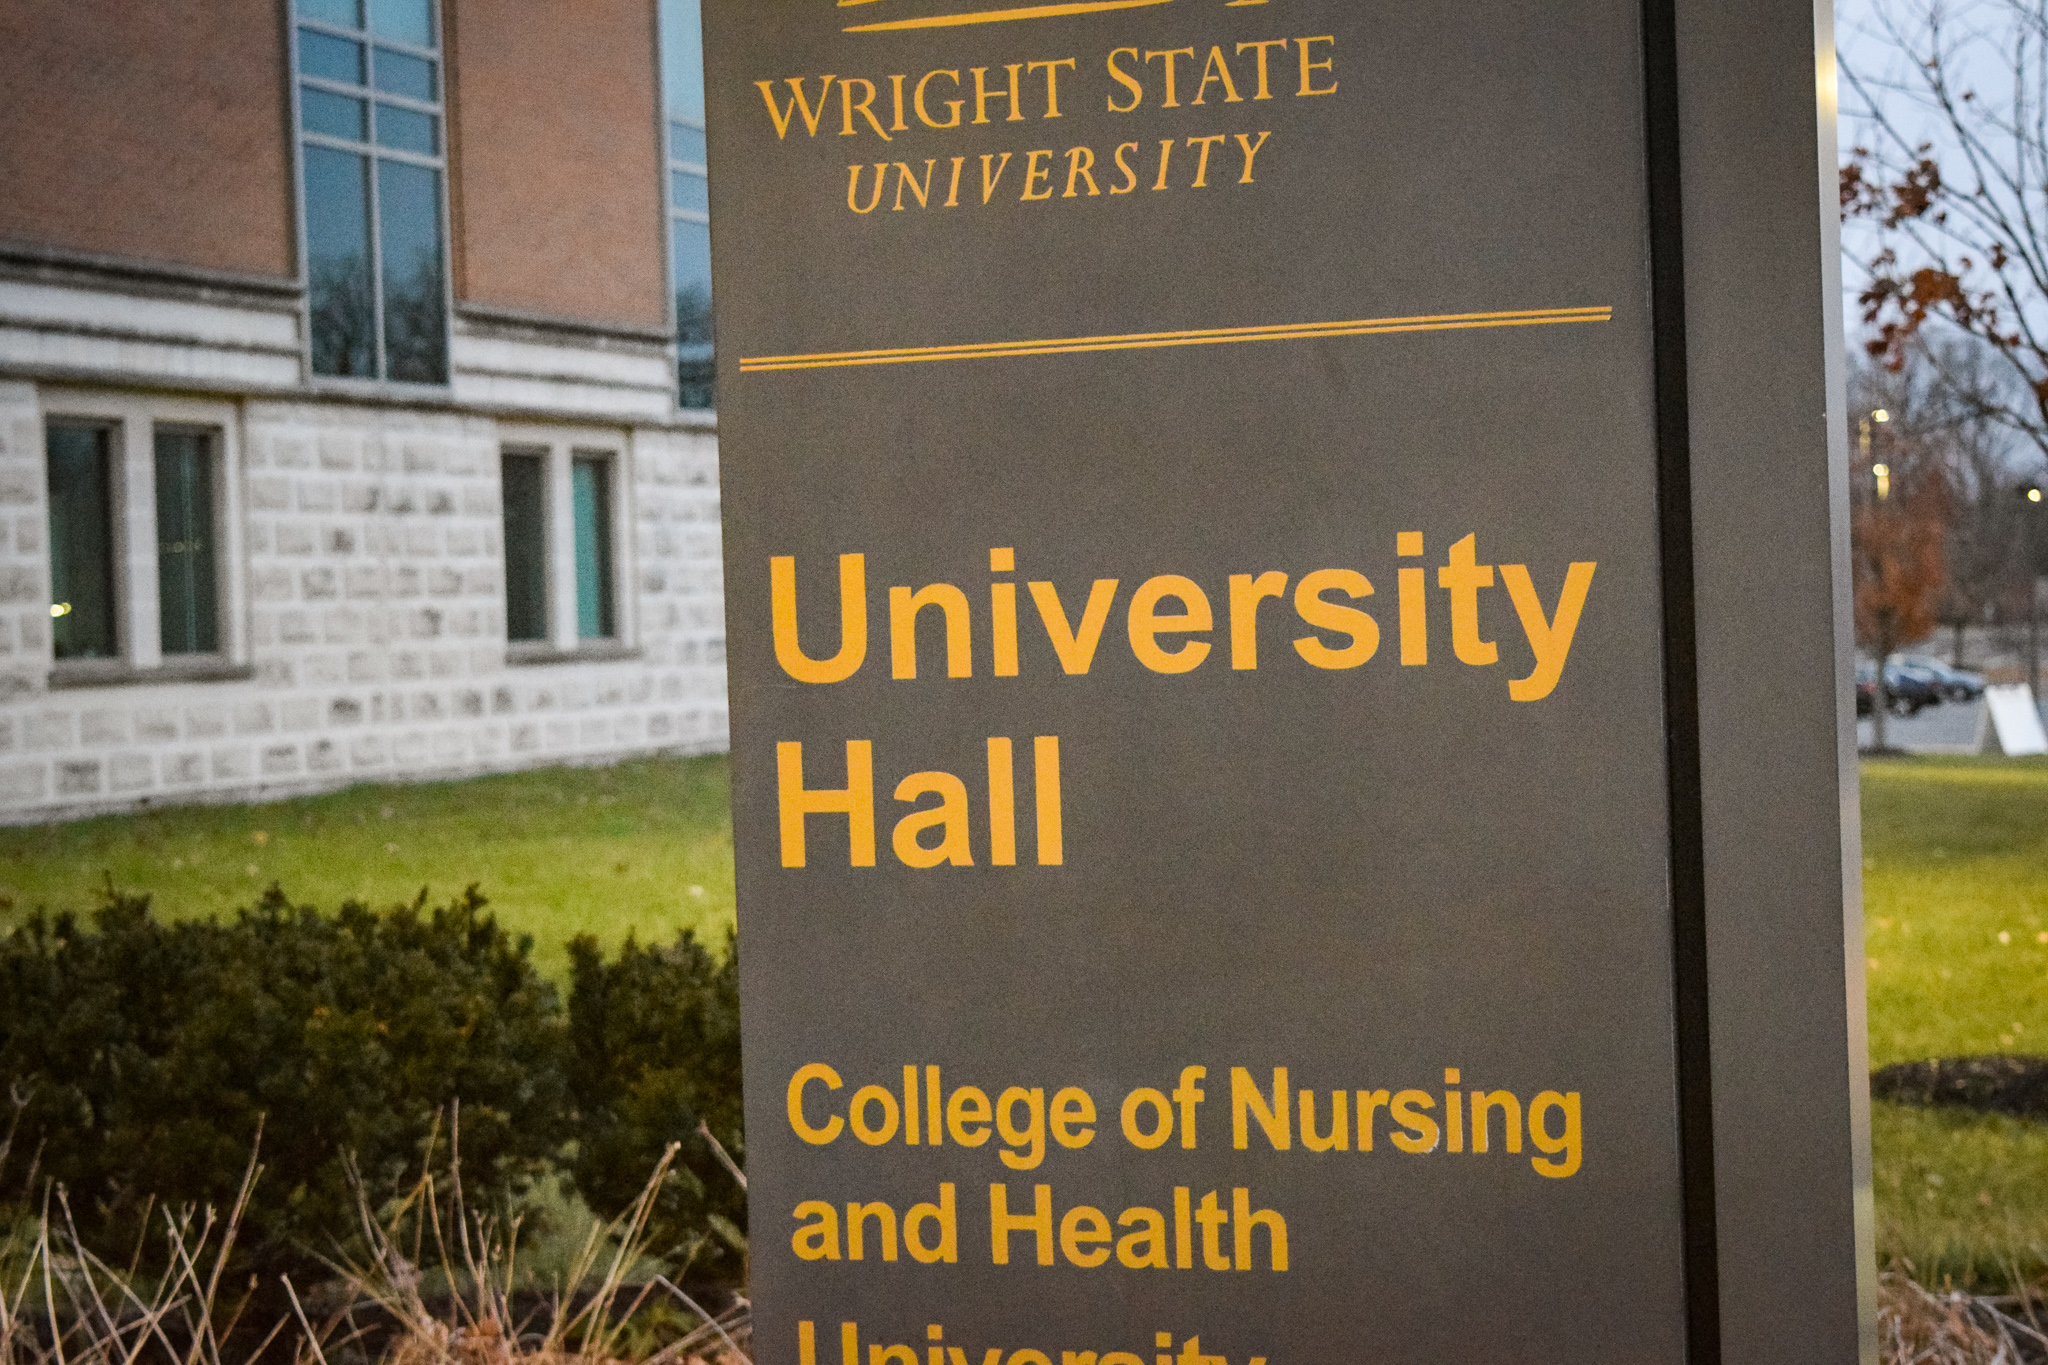 College of Nursing and Health | Photo by Jessica Fugett | The Wright State Guardian